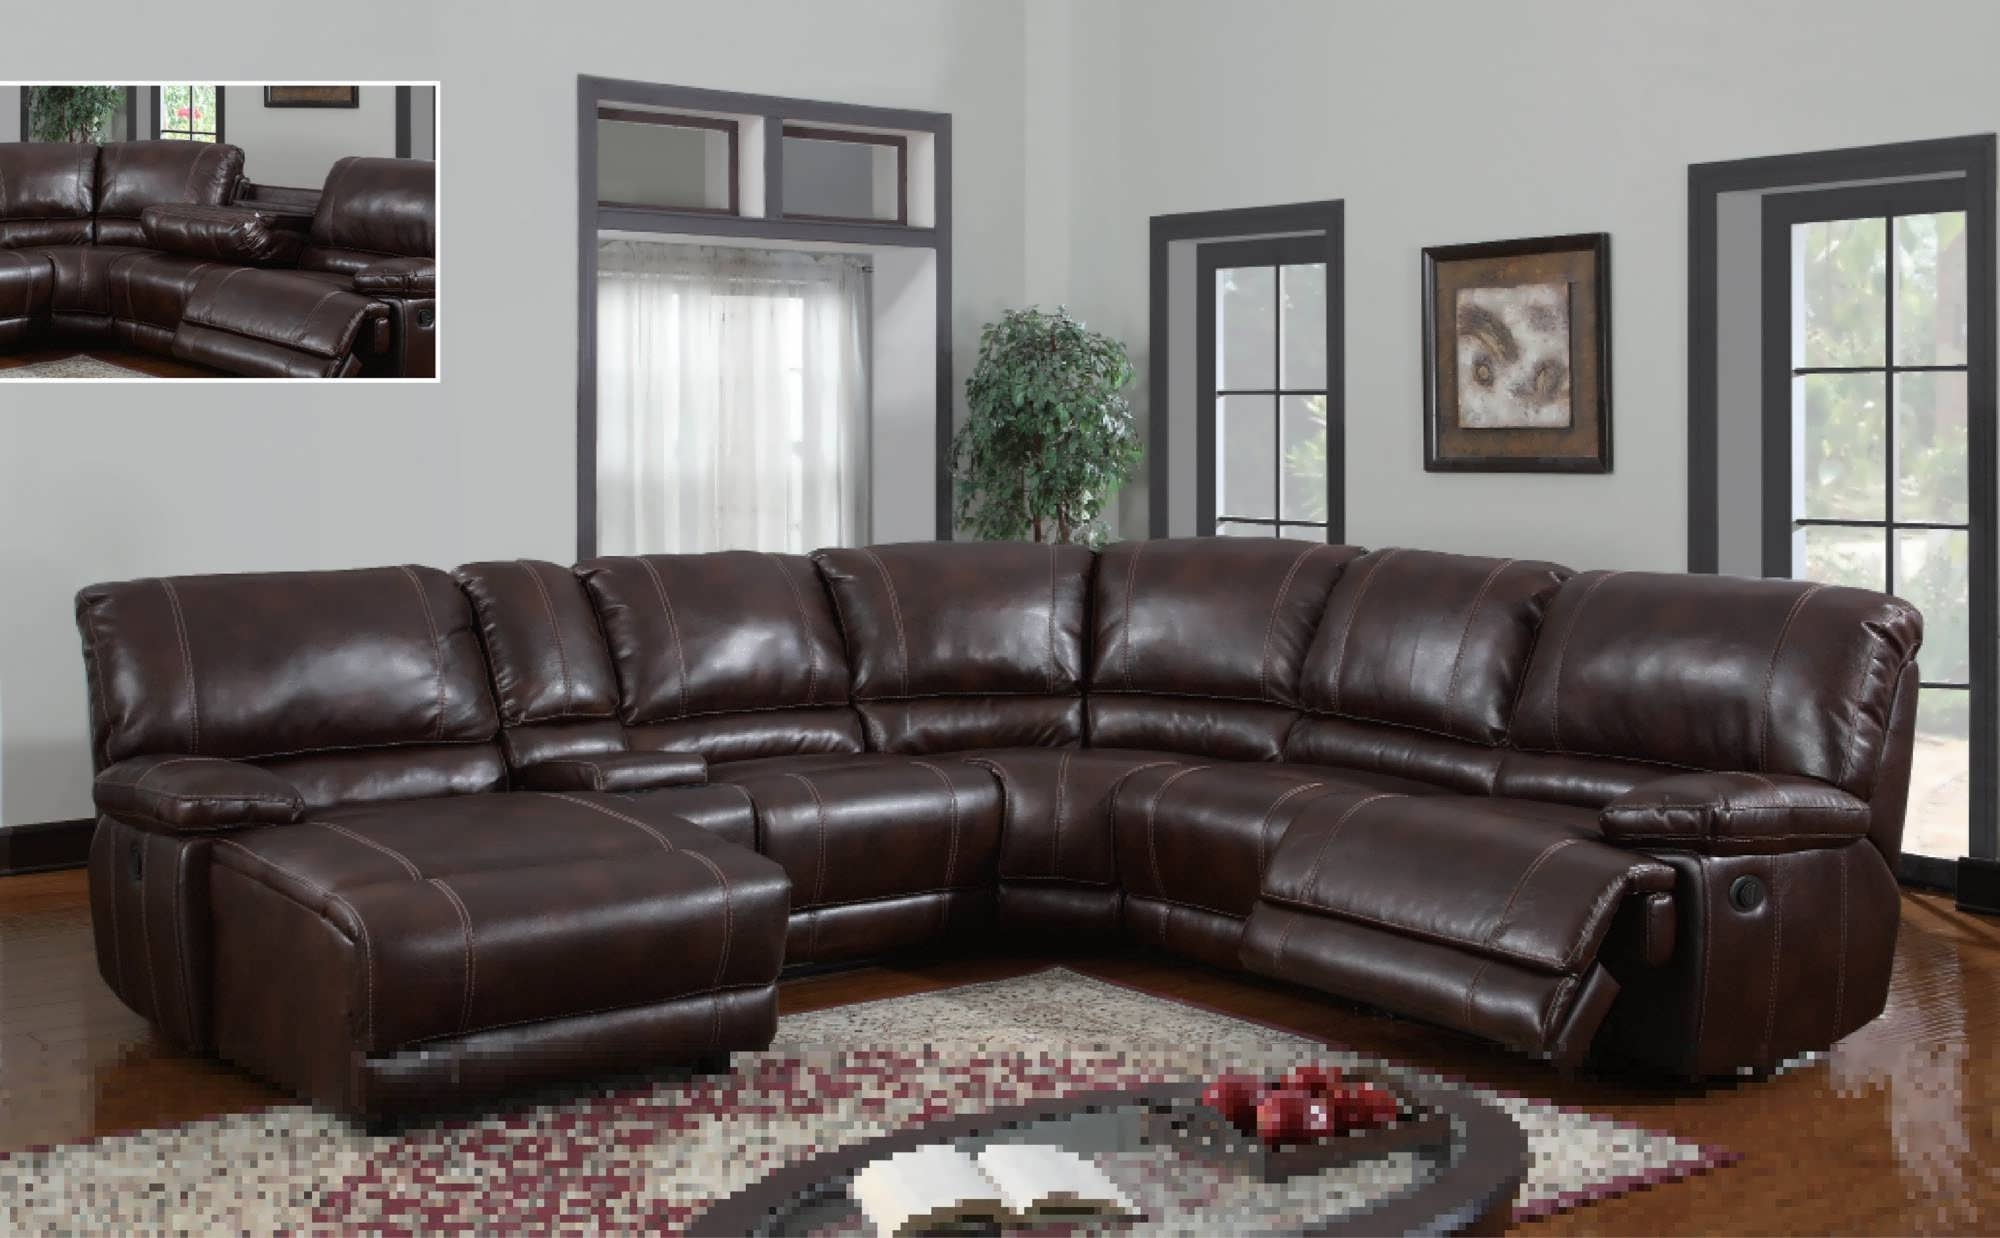 Current Leather Sectionals With Chaise And Recliner Throughout Sofa : Chaise Sofa L Shaped Couch With Recliner U Shaped Sofa U (View 5 of 15)